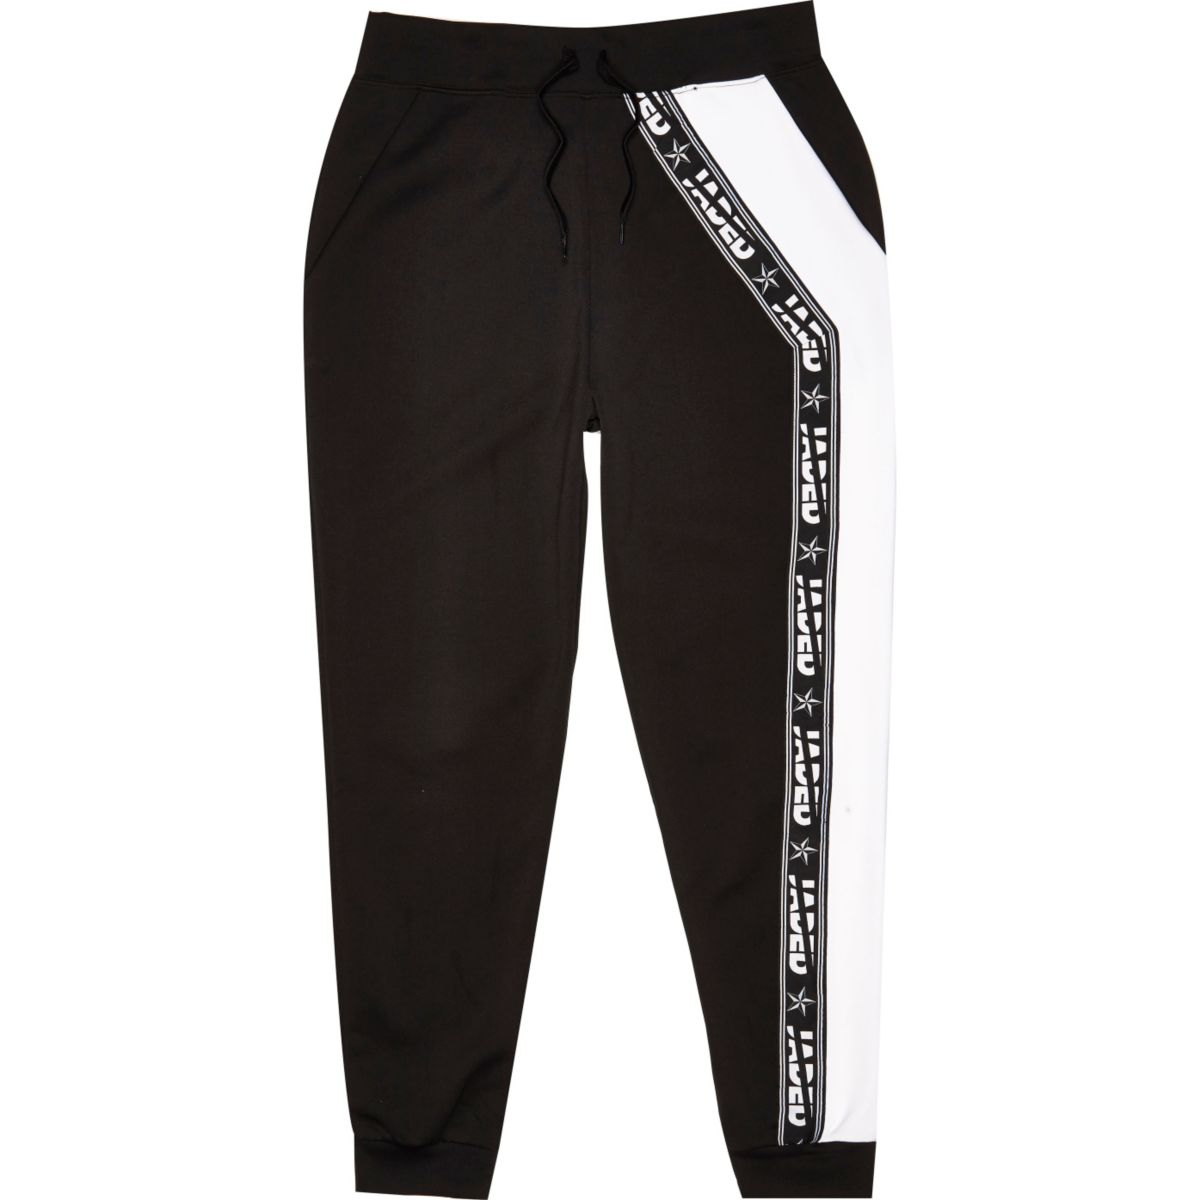 Black Jaded tape joggers